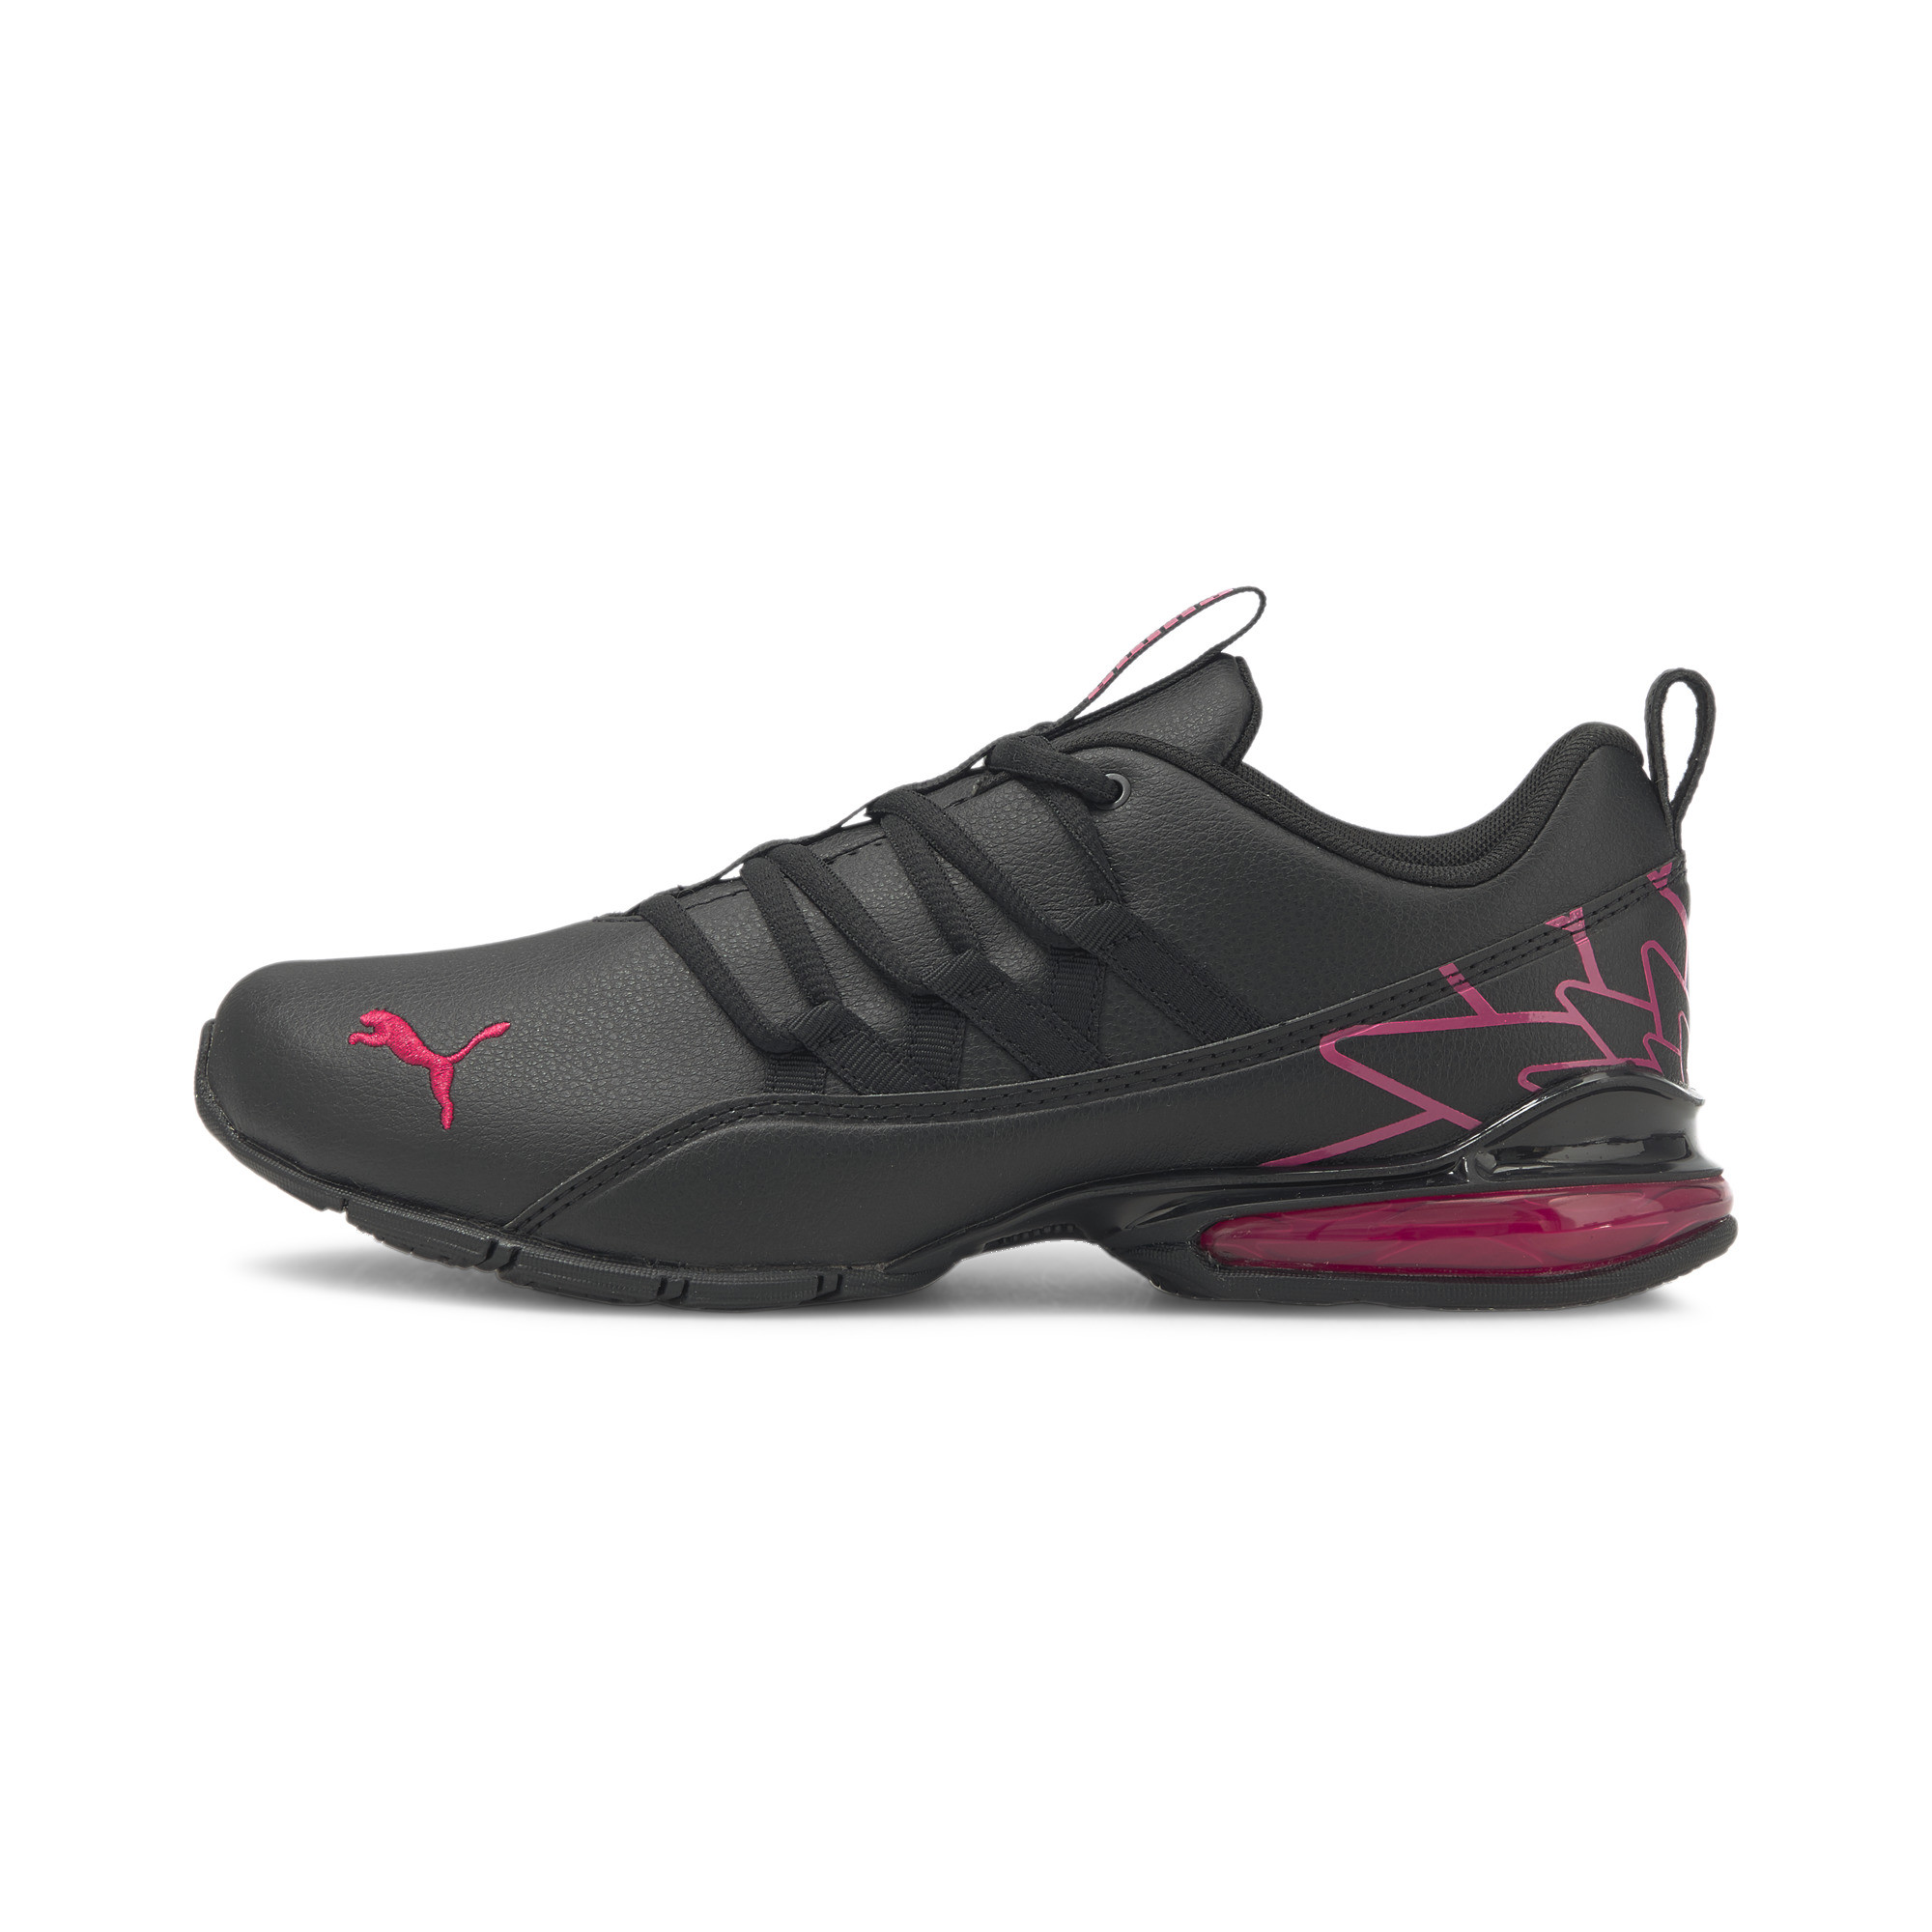 PUMA-Women-039-s-Riaze-Prowl-Graphic-Training-Shoes thumbnail 4